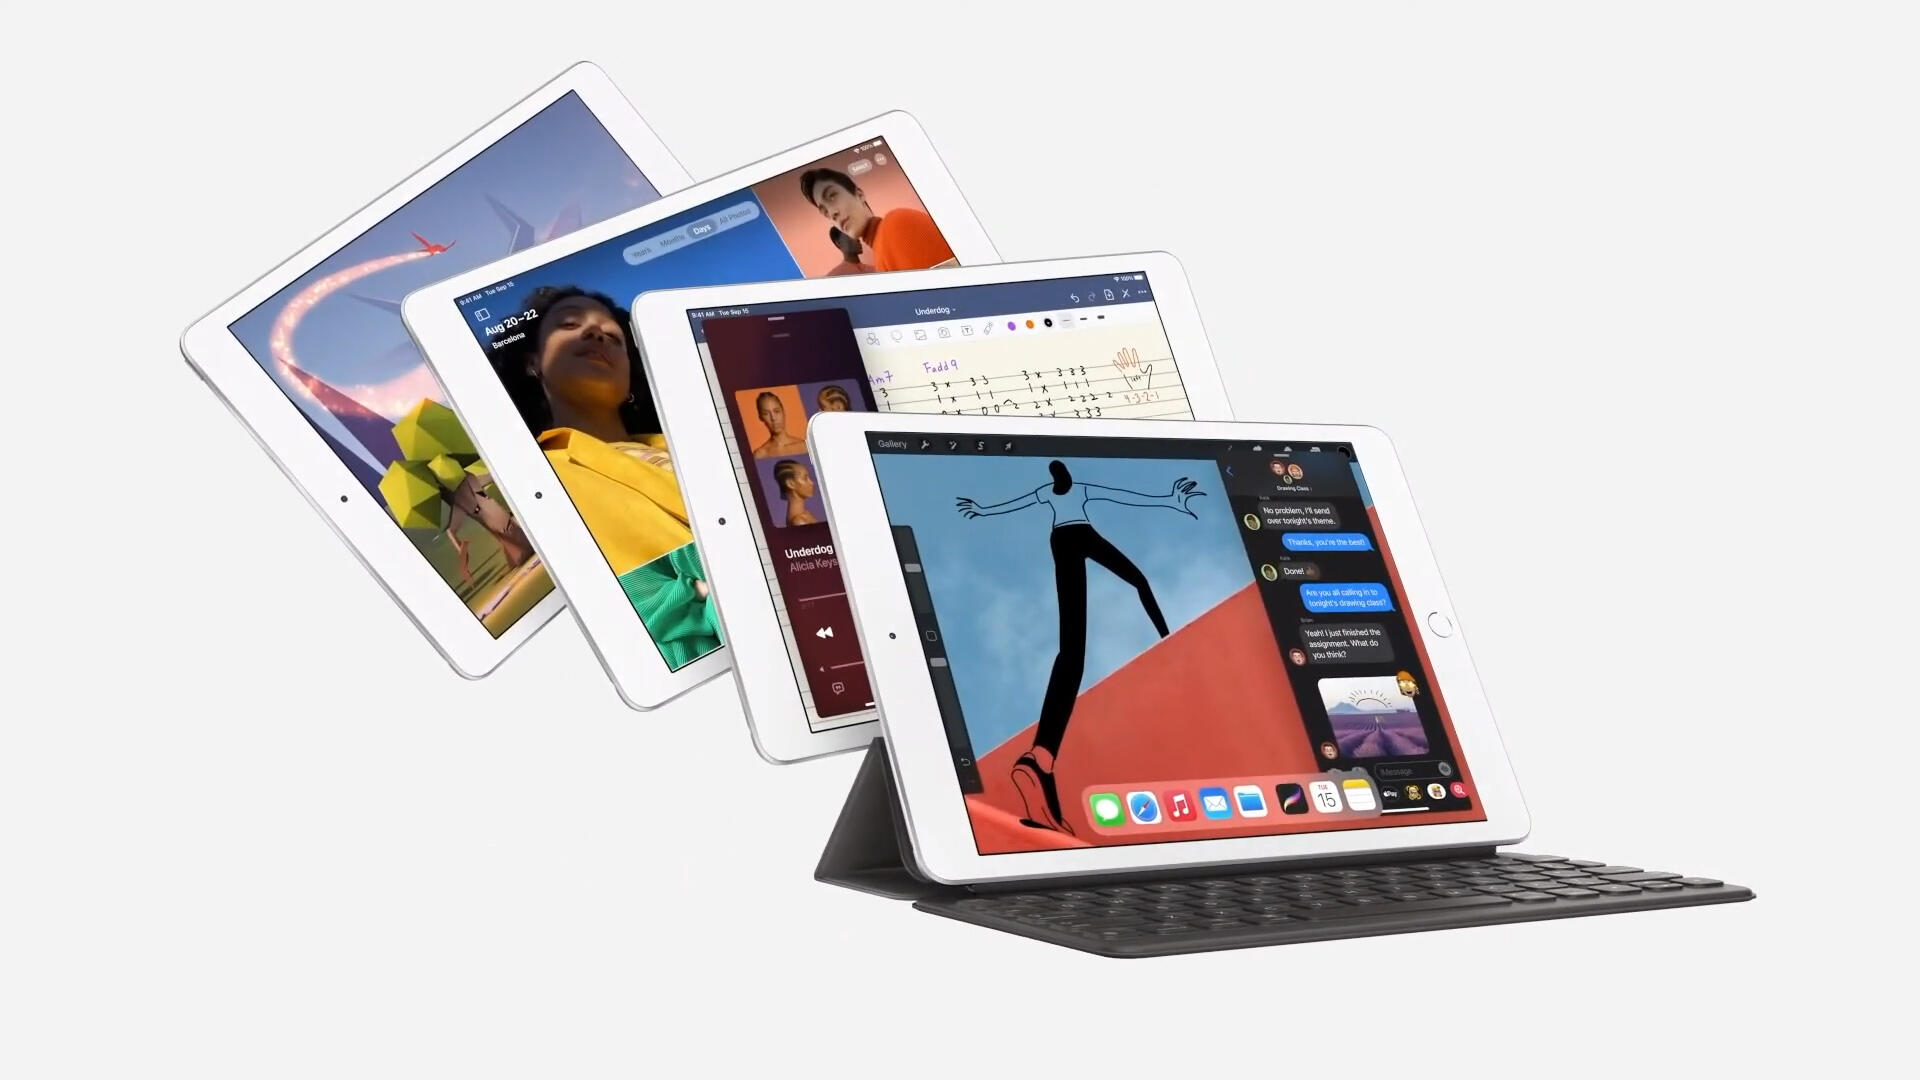 Video: Apple announces 8th-gen iPad